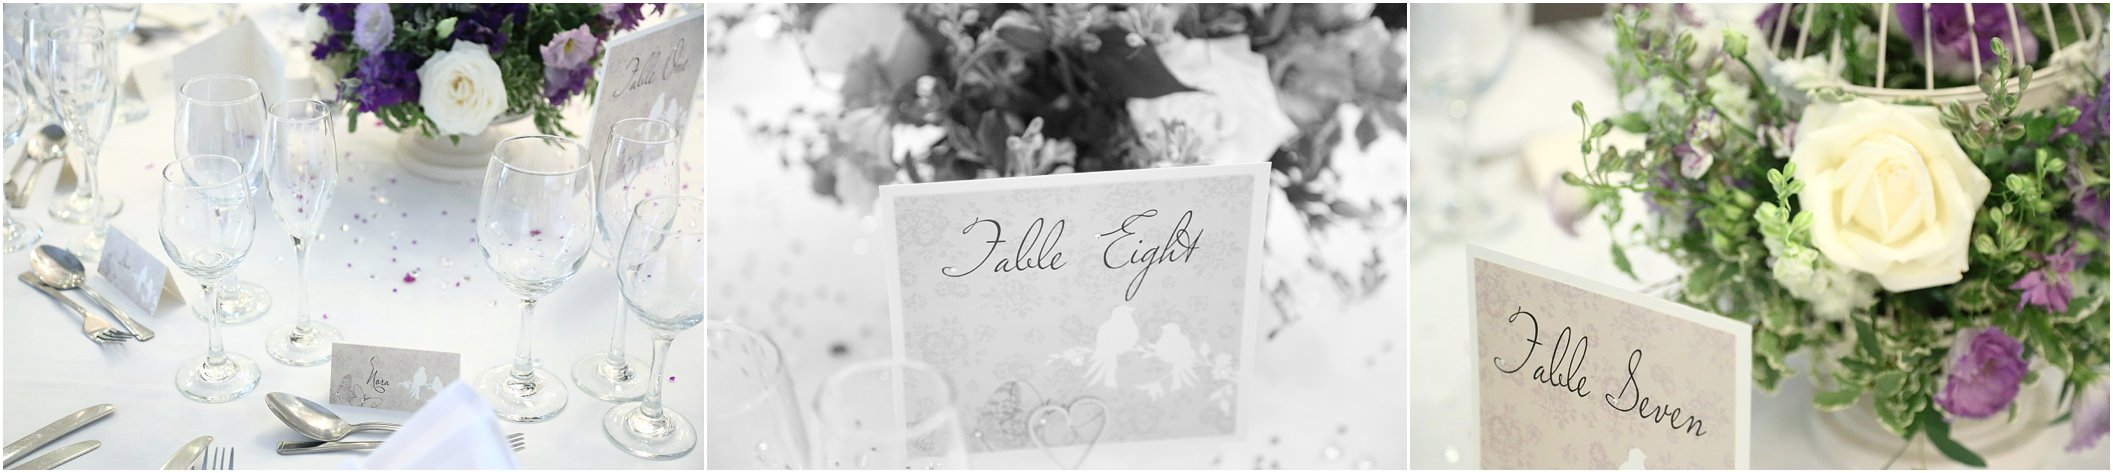 bedford-lodge-newmarket-wedding-photography_0007